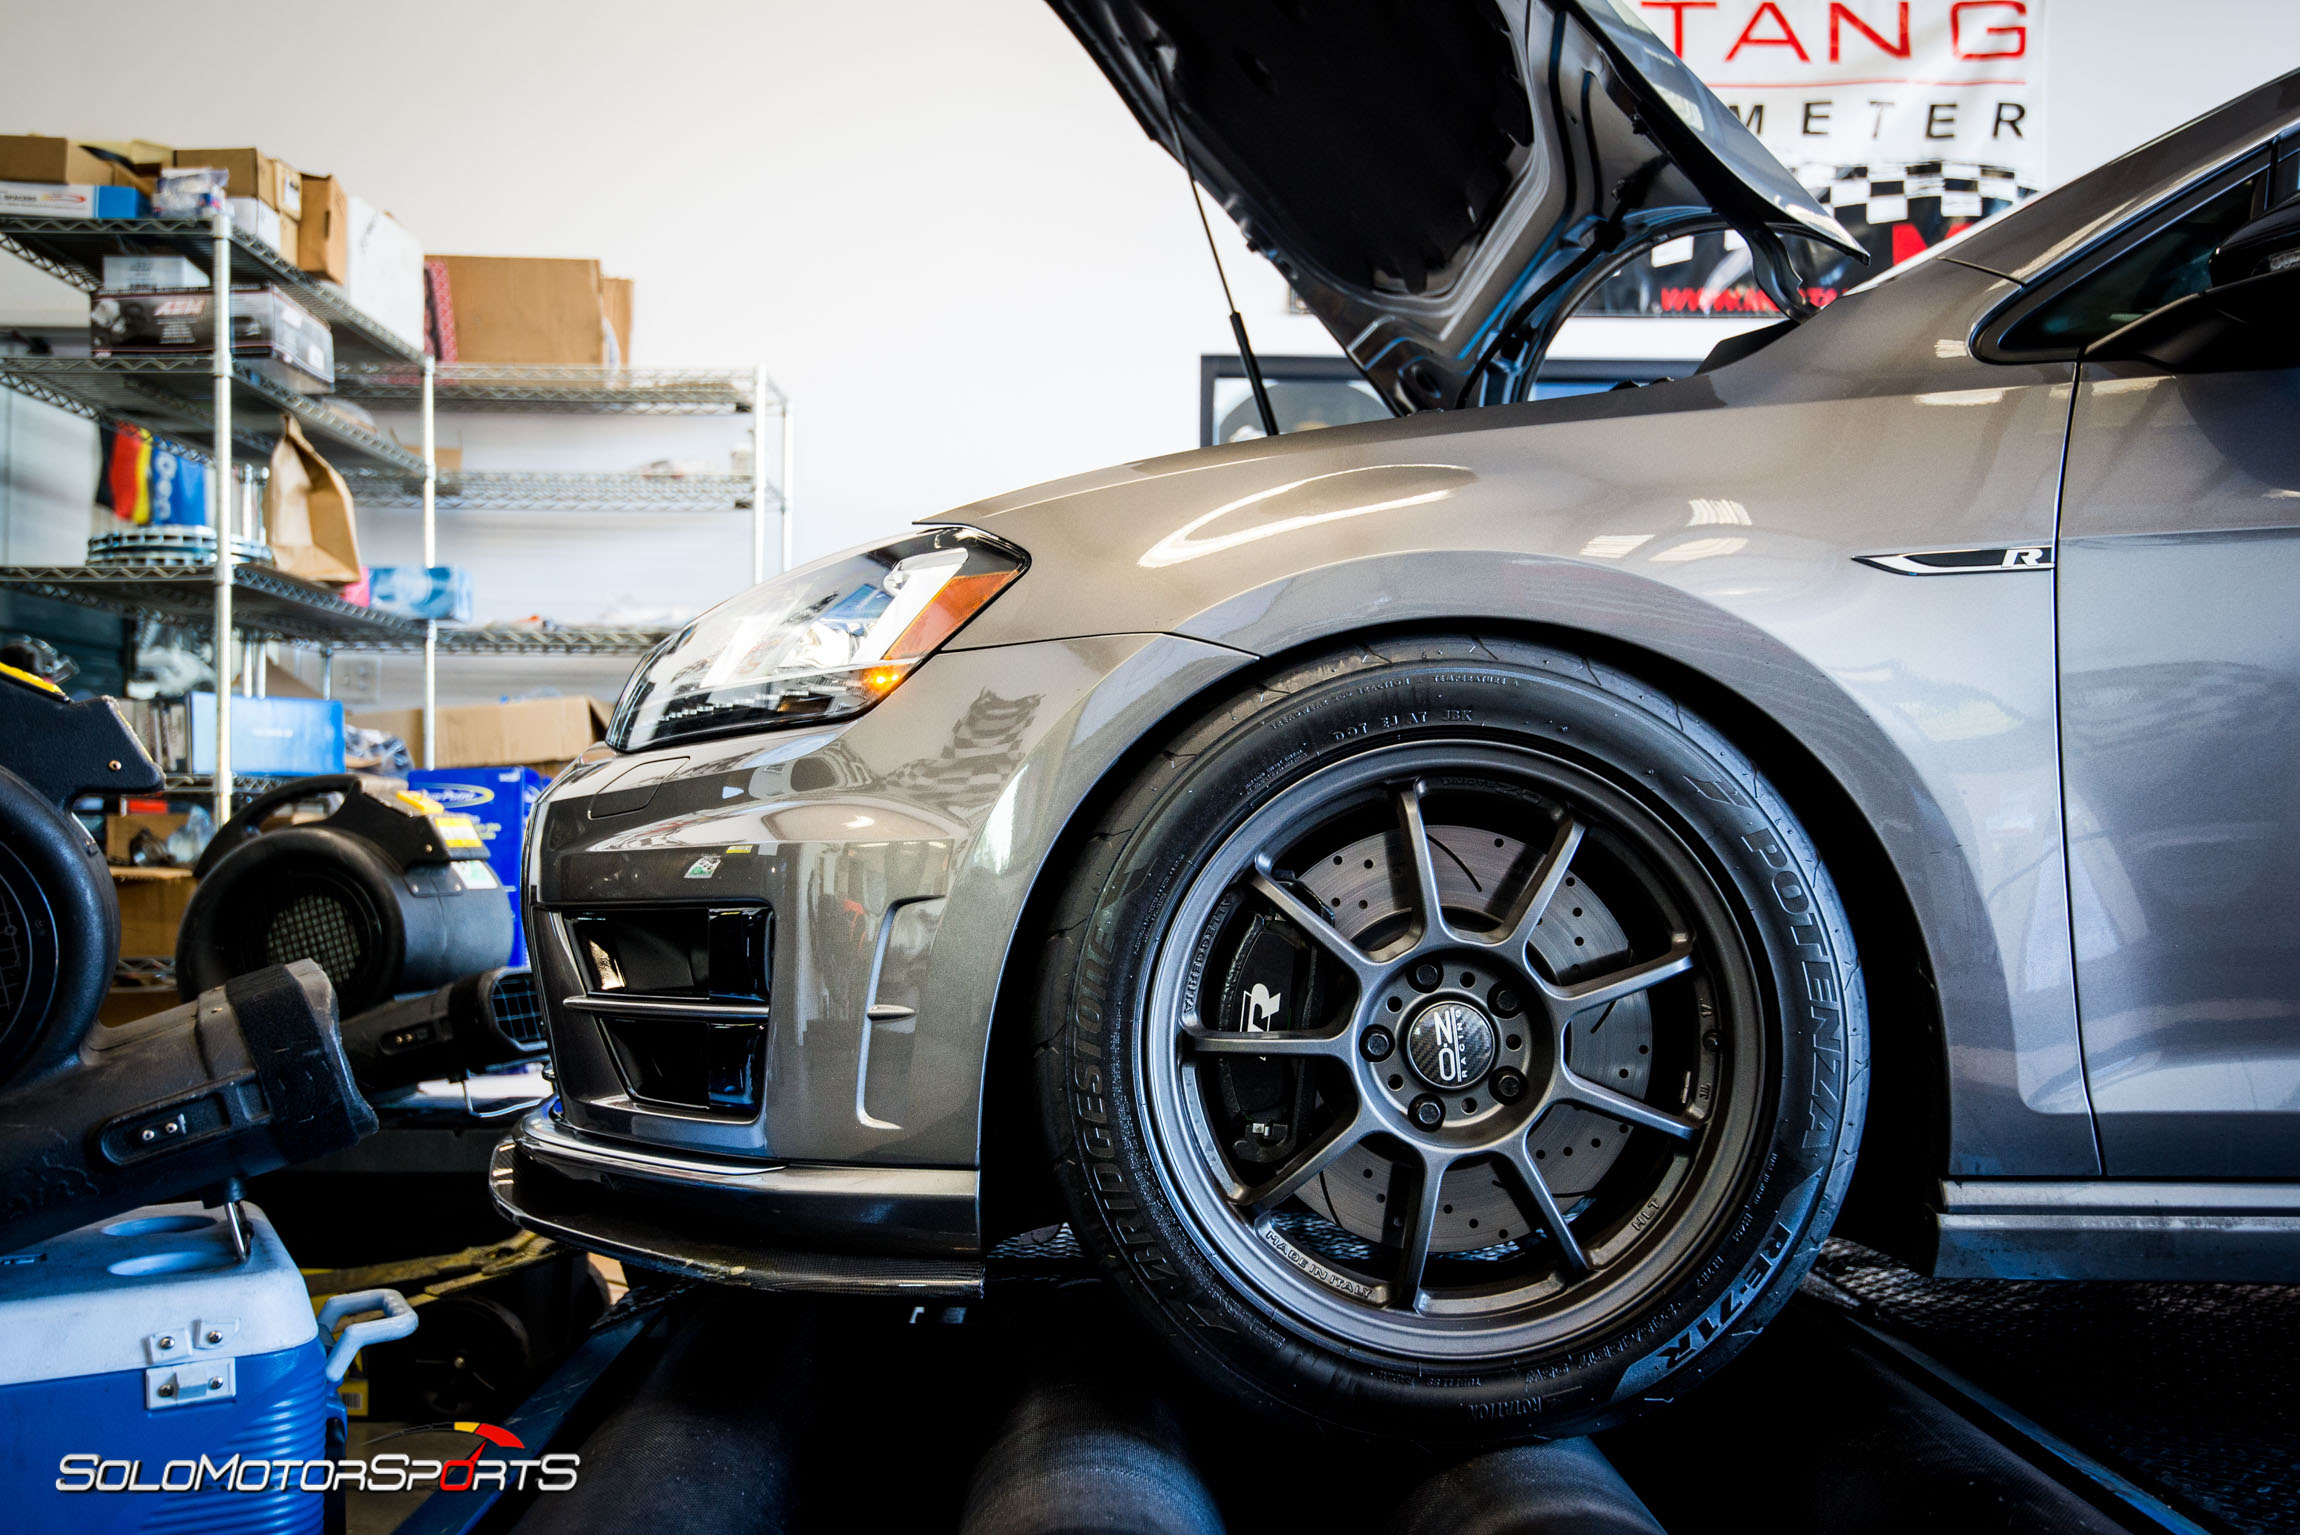 Mk7 Volkswagen Golf R Stage 3 plus in for dyno runs and electric exhaust cutouts.